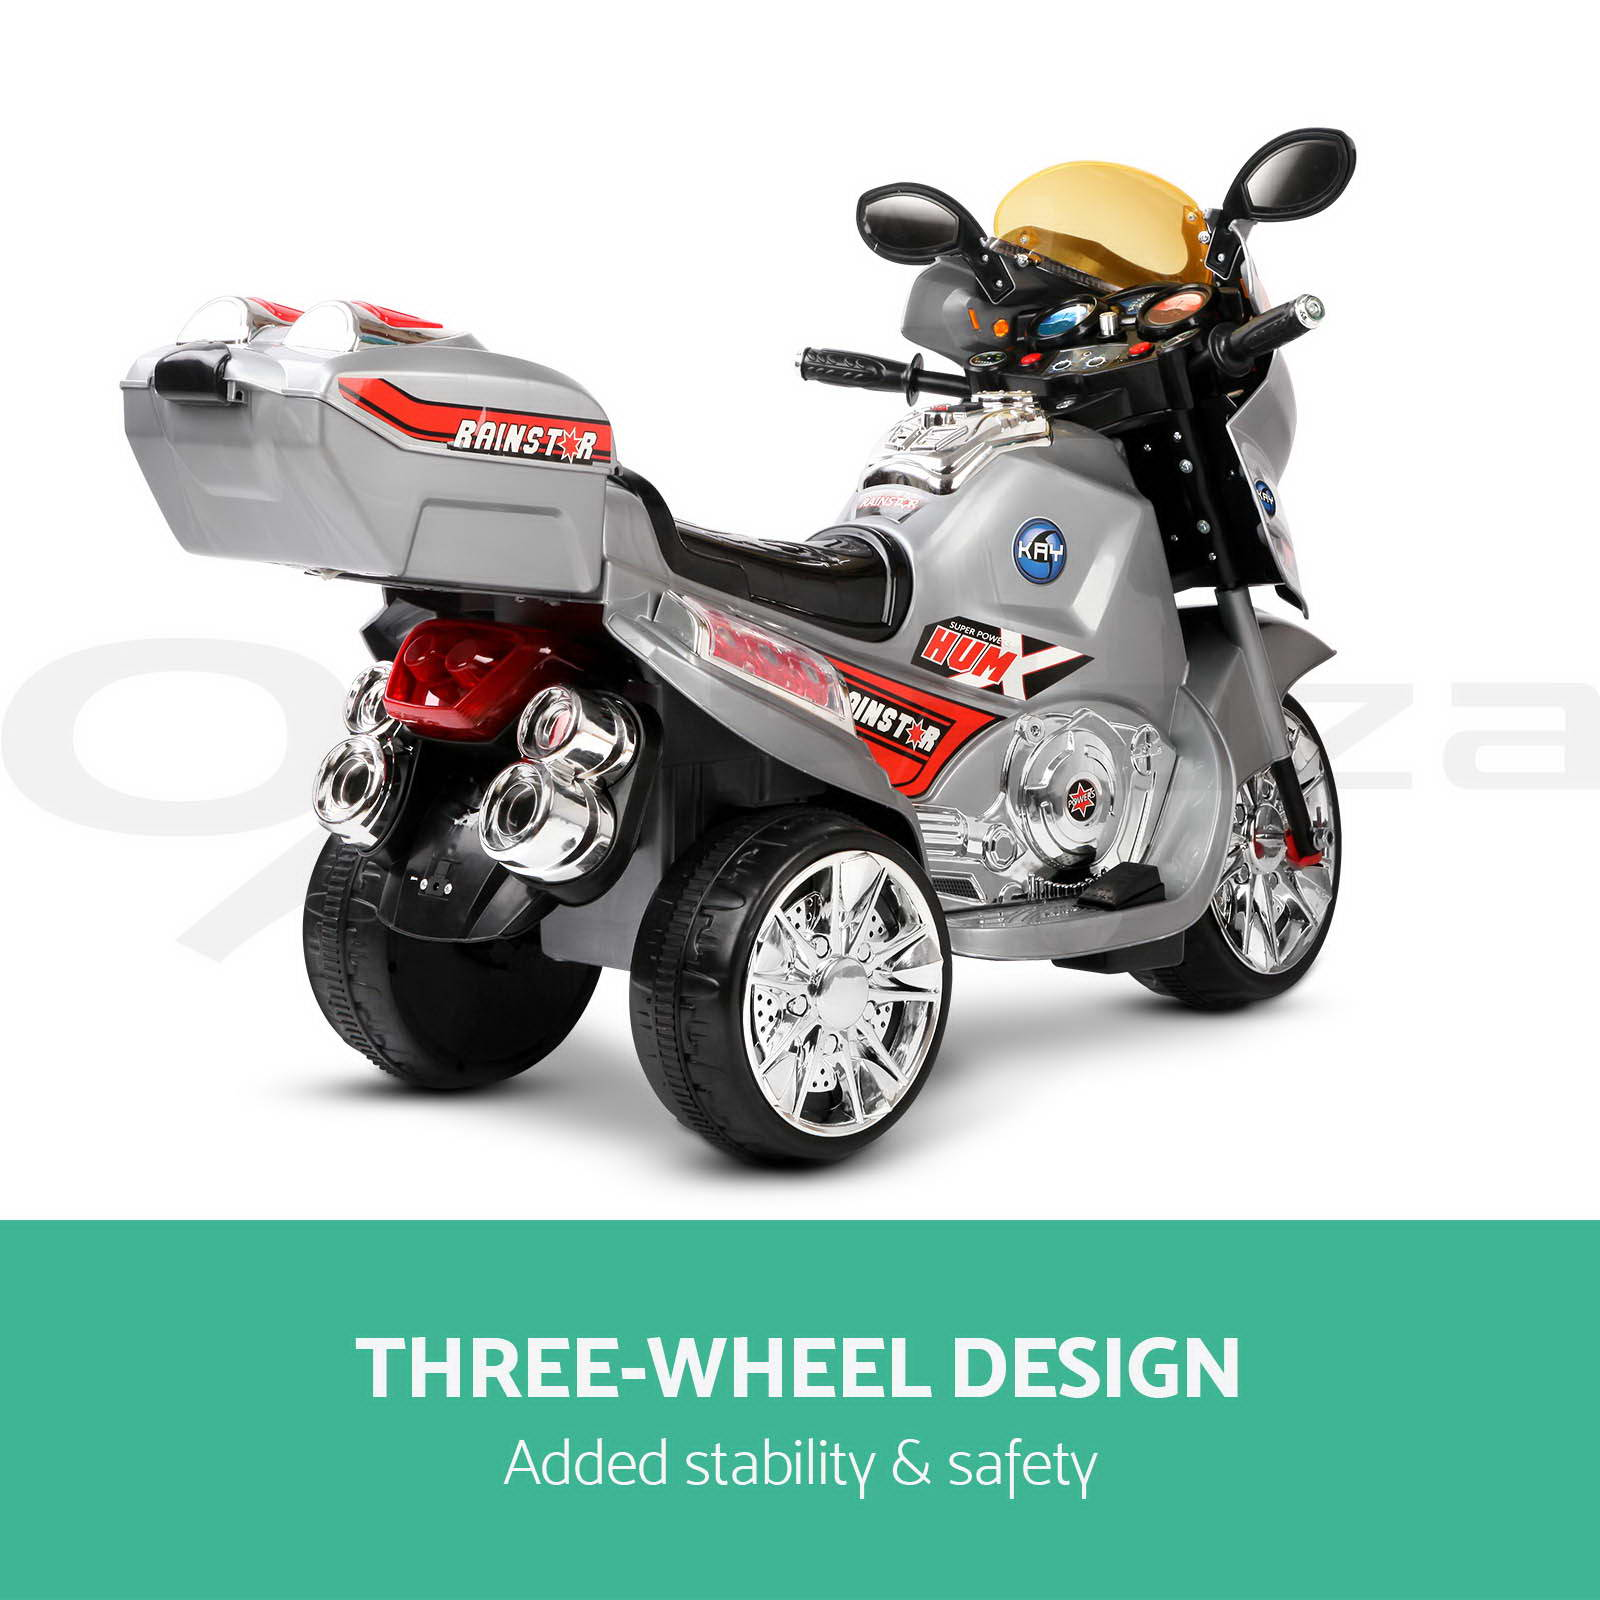 ebay remote control gas cars with Ride On Motorcycle Toys on Rc Boat Toys additionally 141486037356 moreover Ride On Motorcycle Toys furthermore 151778365940 as well About Us.